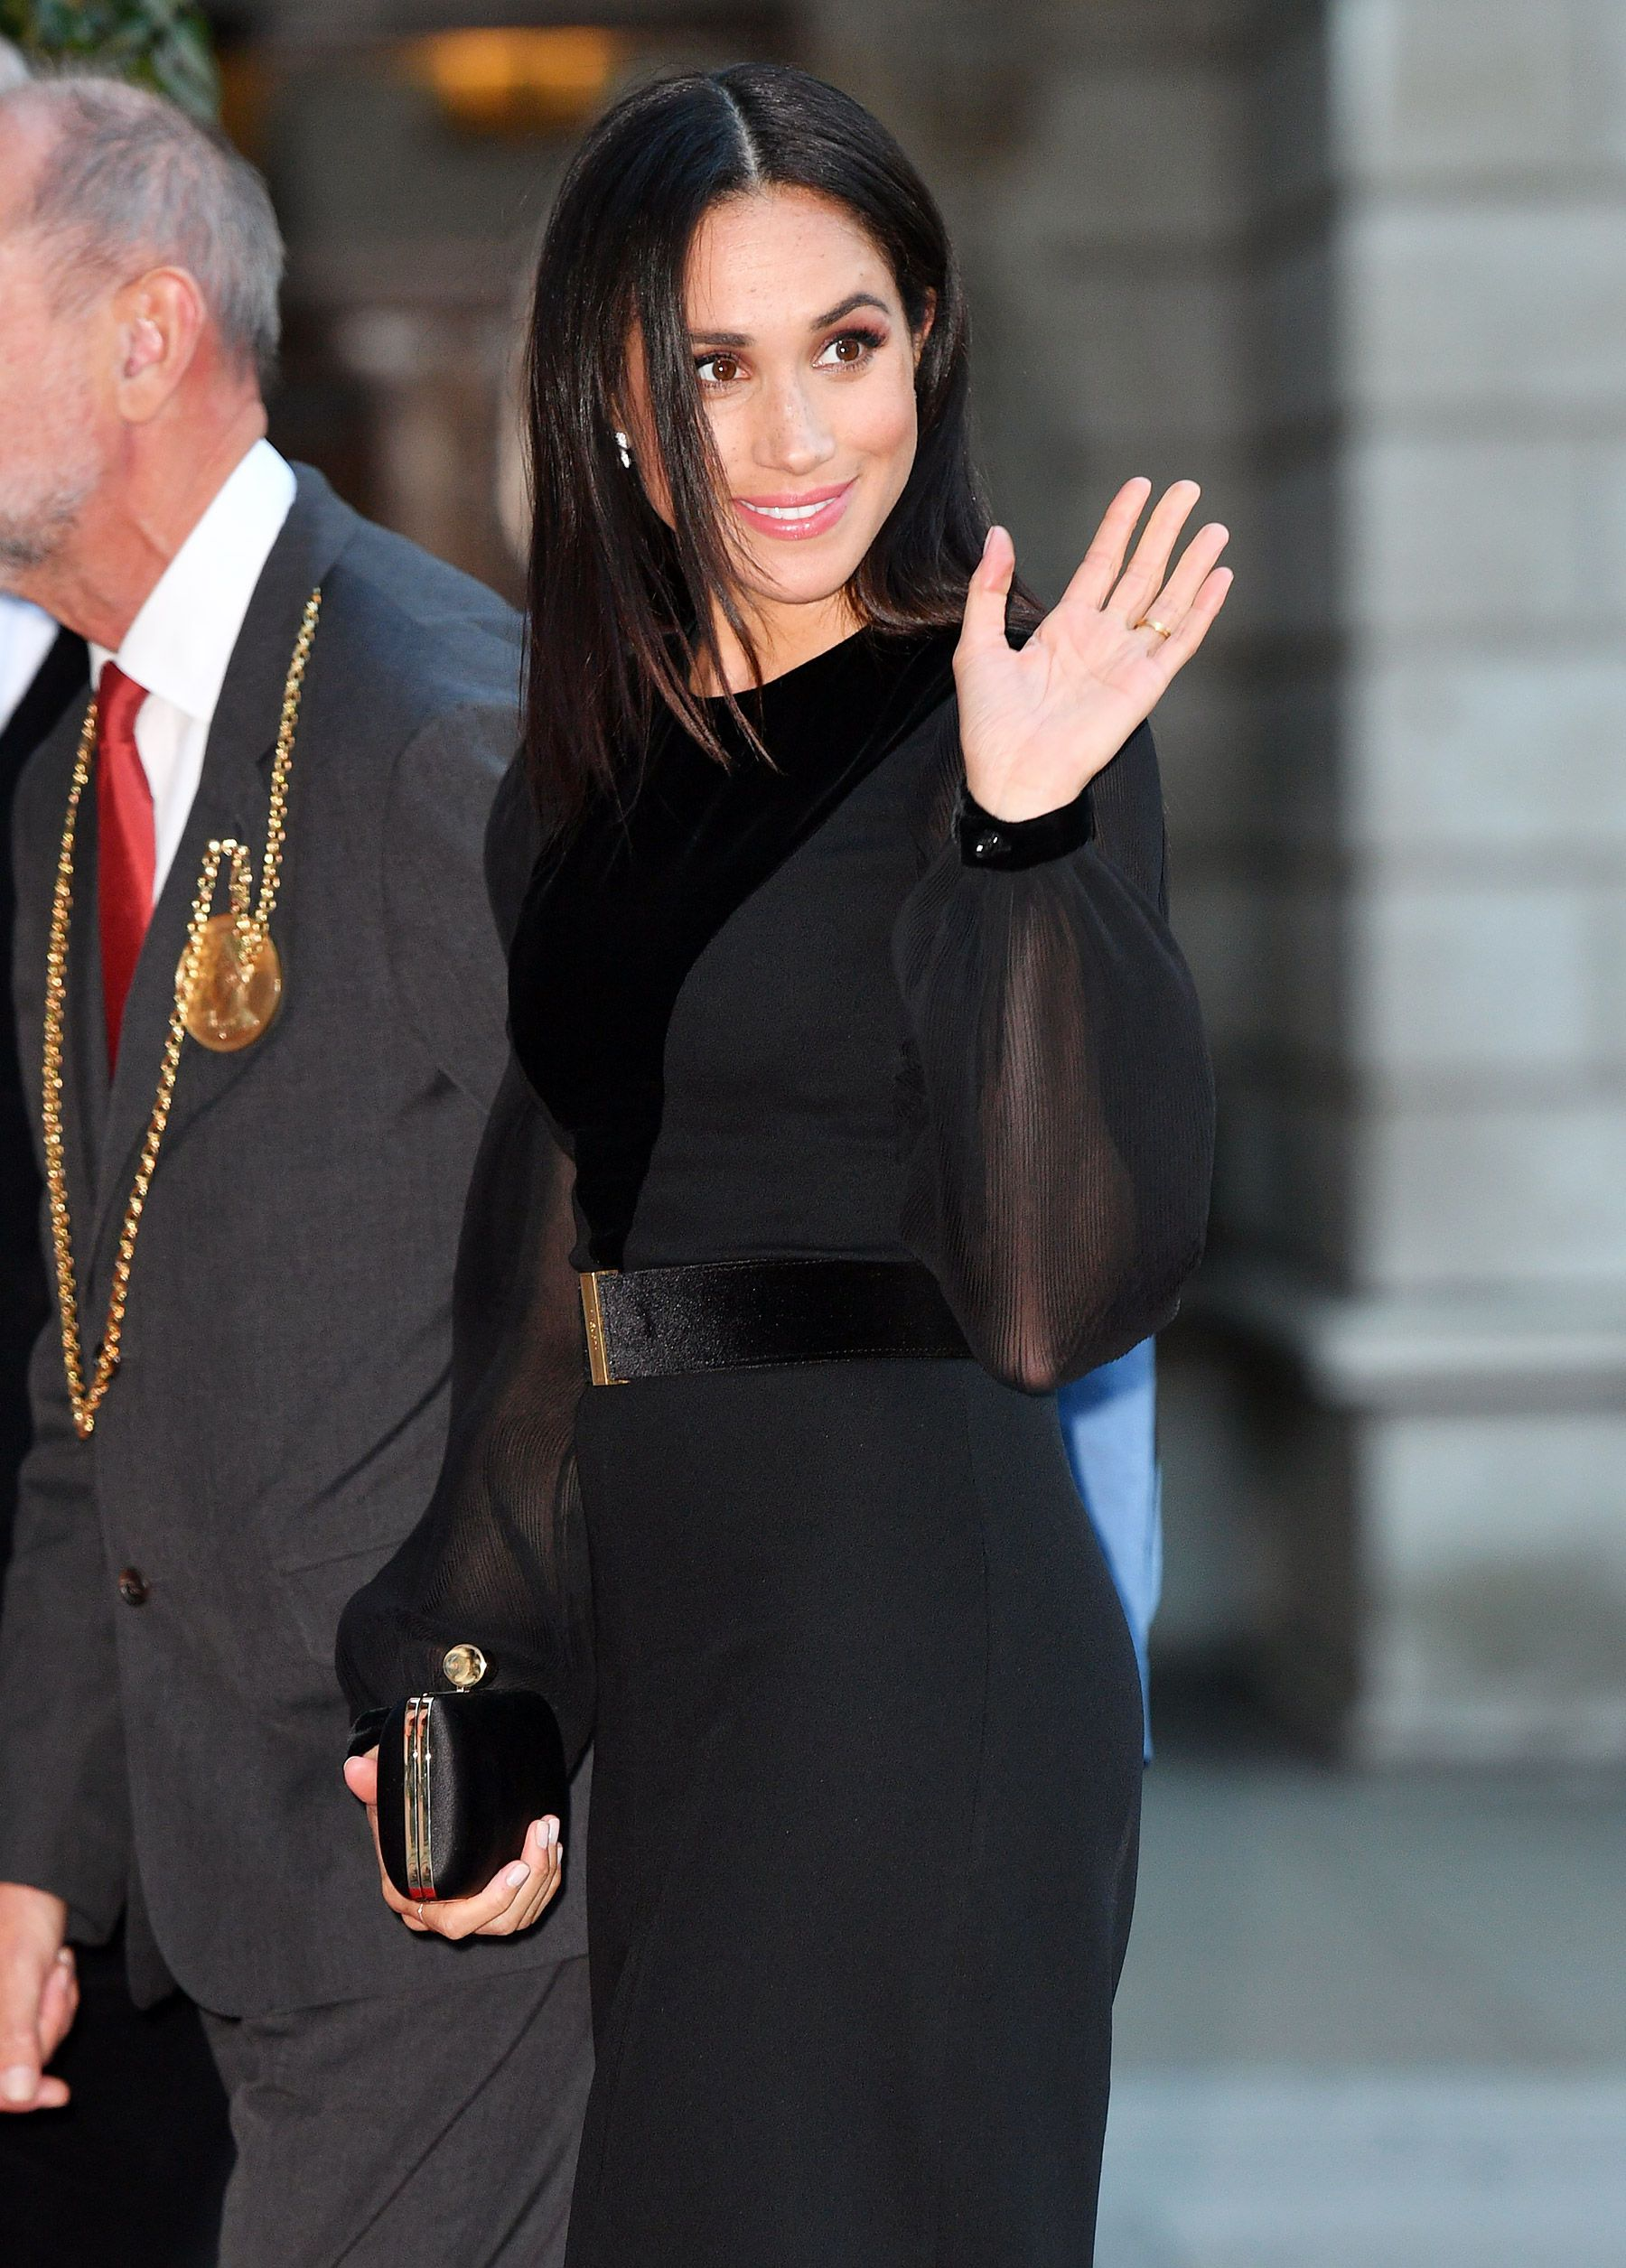 The Special Meaning Behind Meghan Markle's Black Dress For